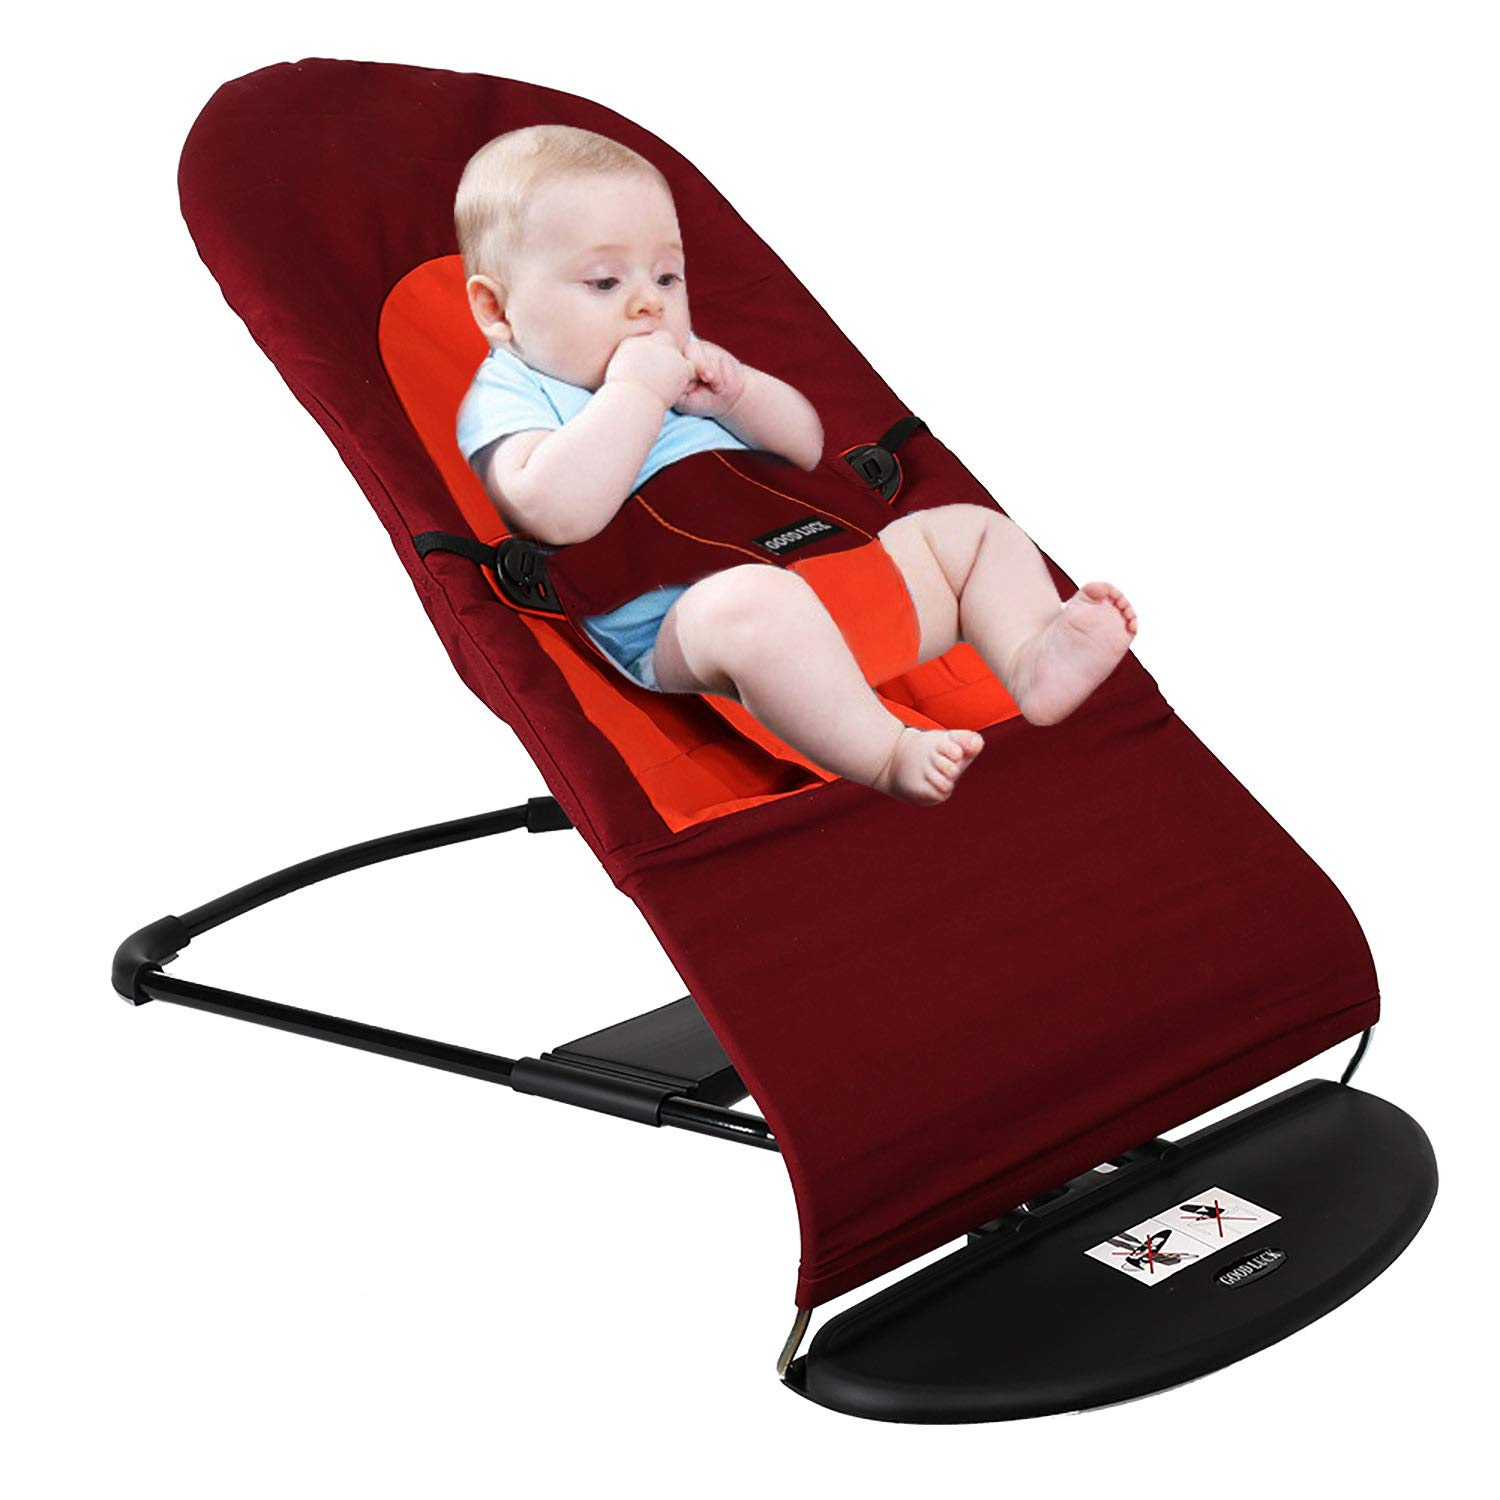 Baby Bouncer Balance Soft Rocking Chair,Automatic Swing Bring Fun Experience, Cotton Dporticus